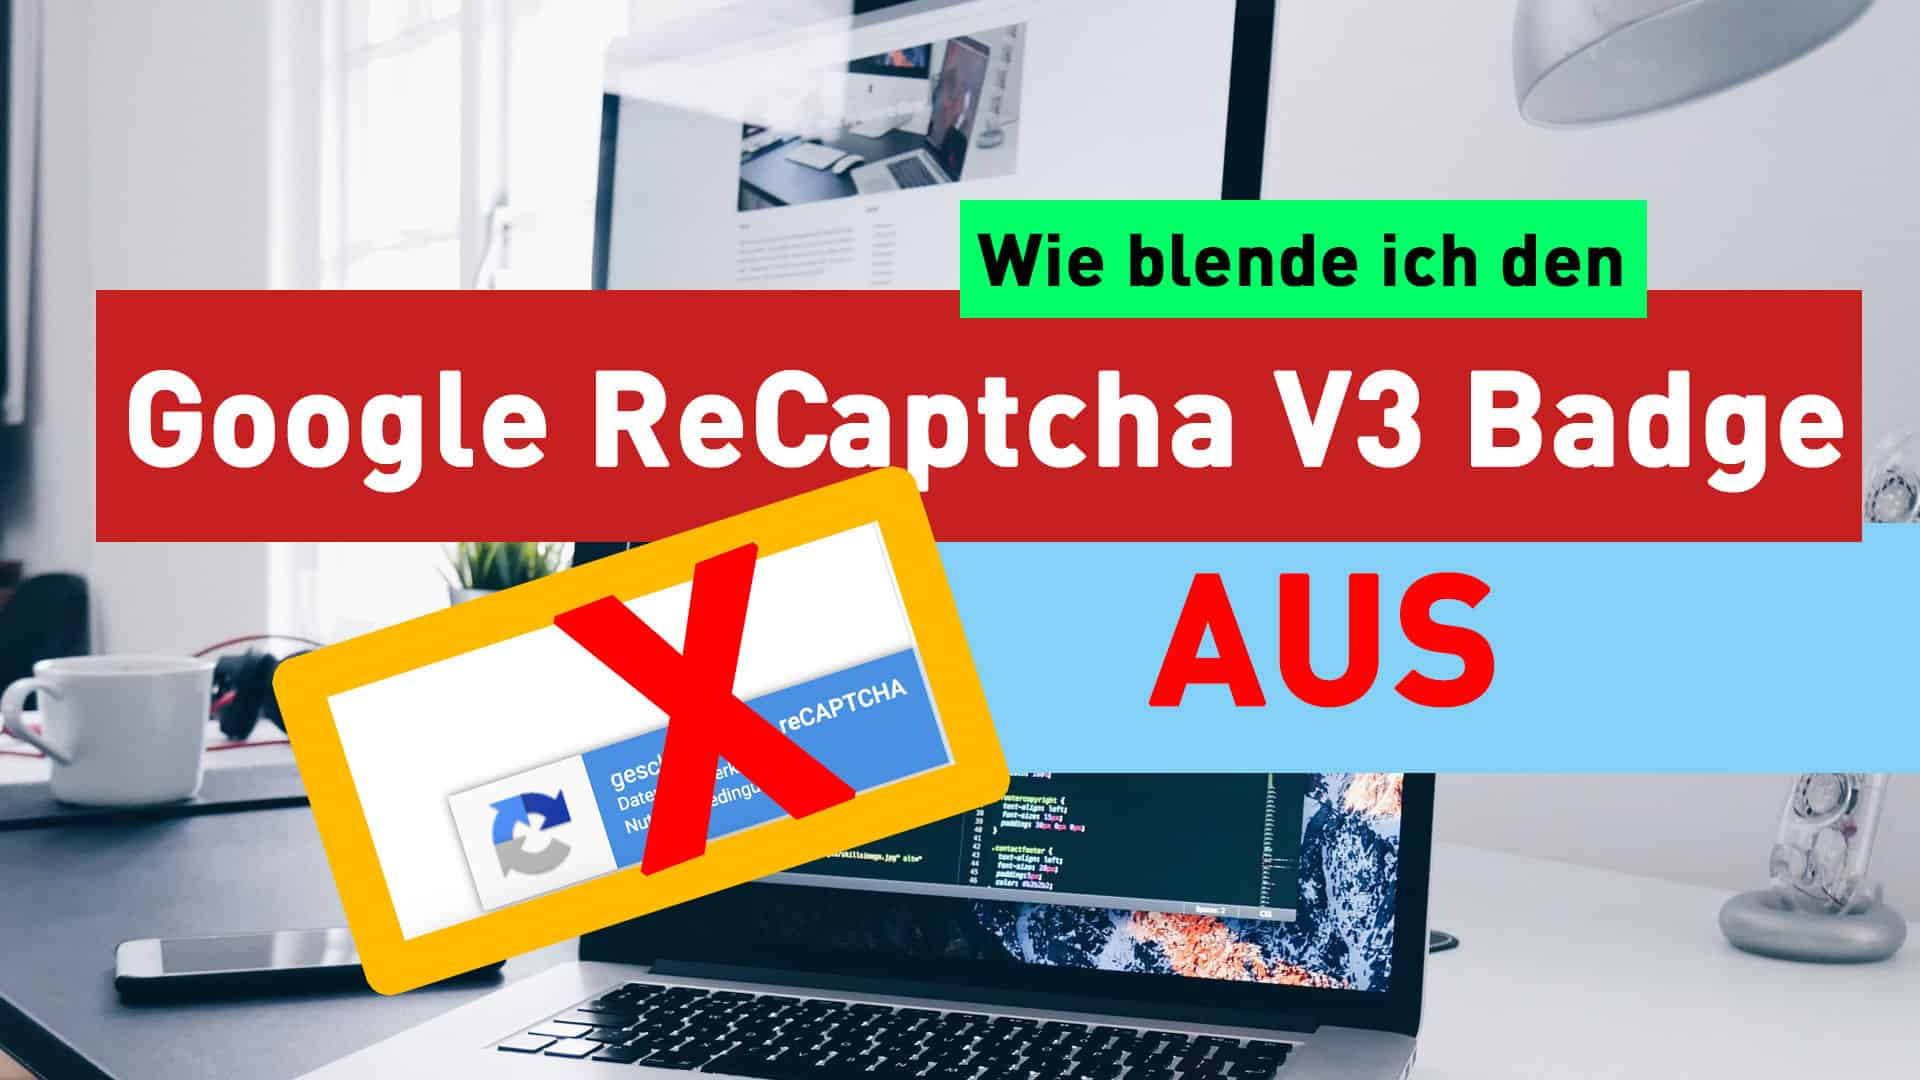 Google Recaptcha V3 Button / Badge ausblenden